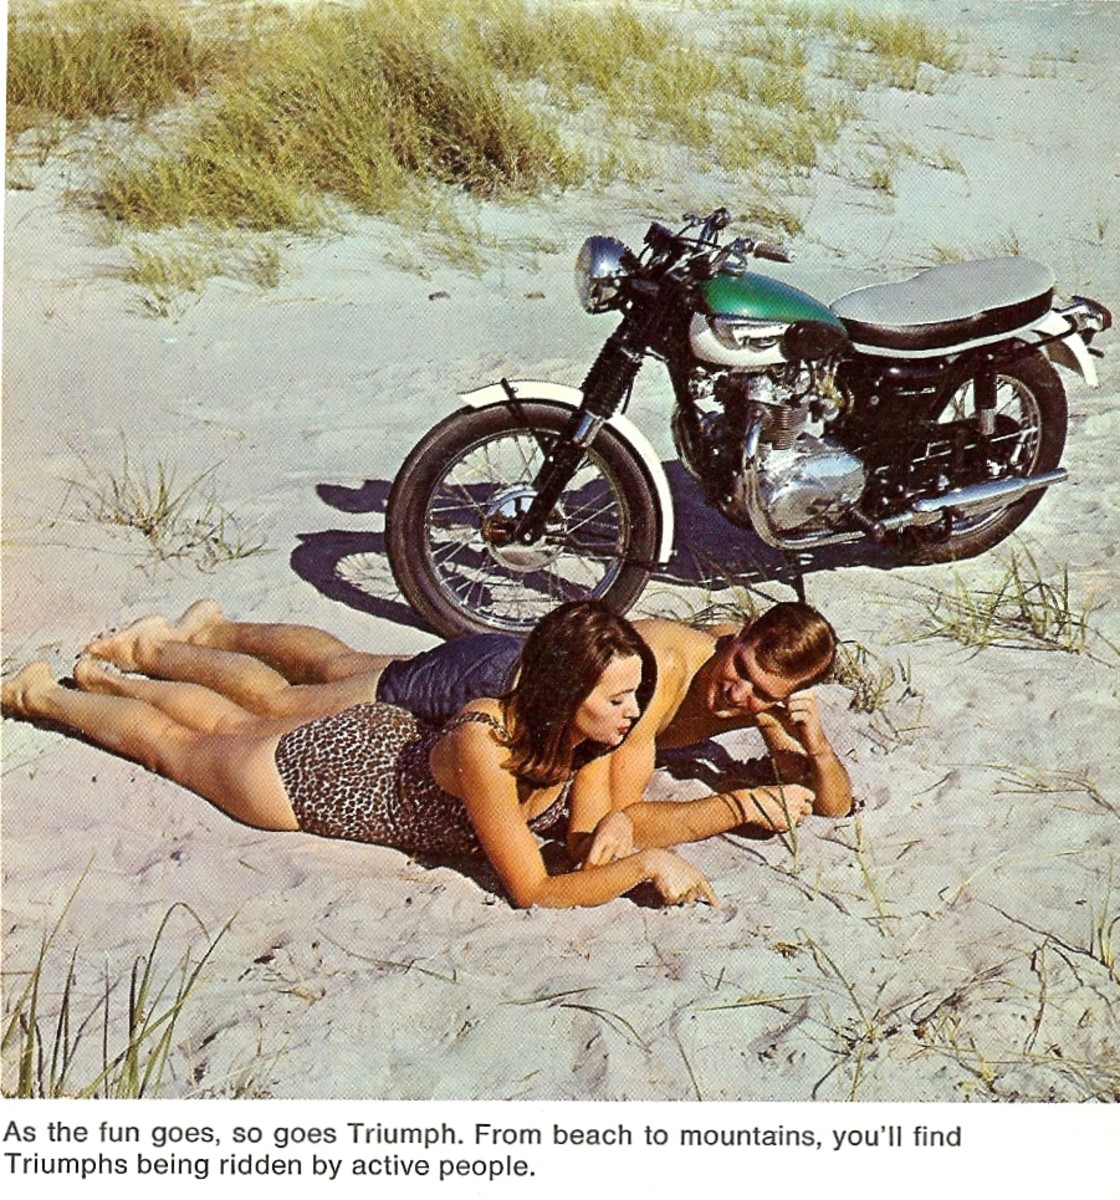 vintage-triumph-motorcycle-ads-widescreen-2.jpg